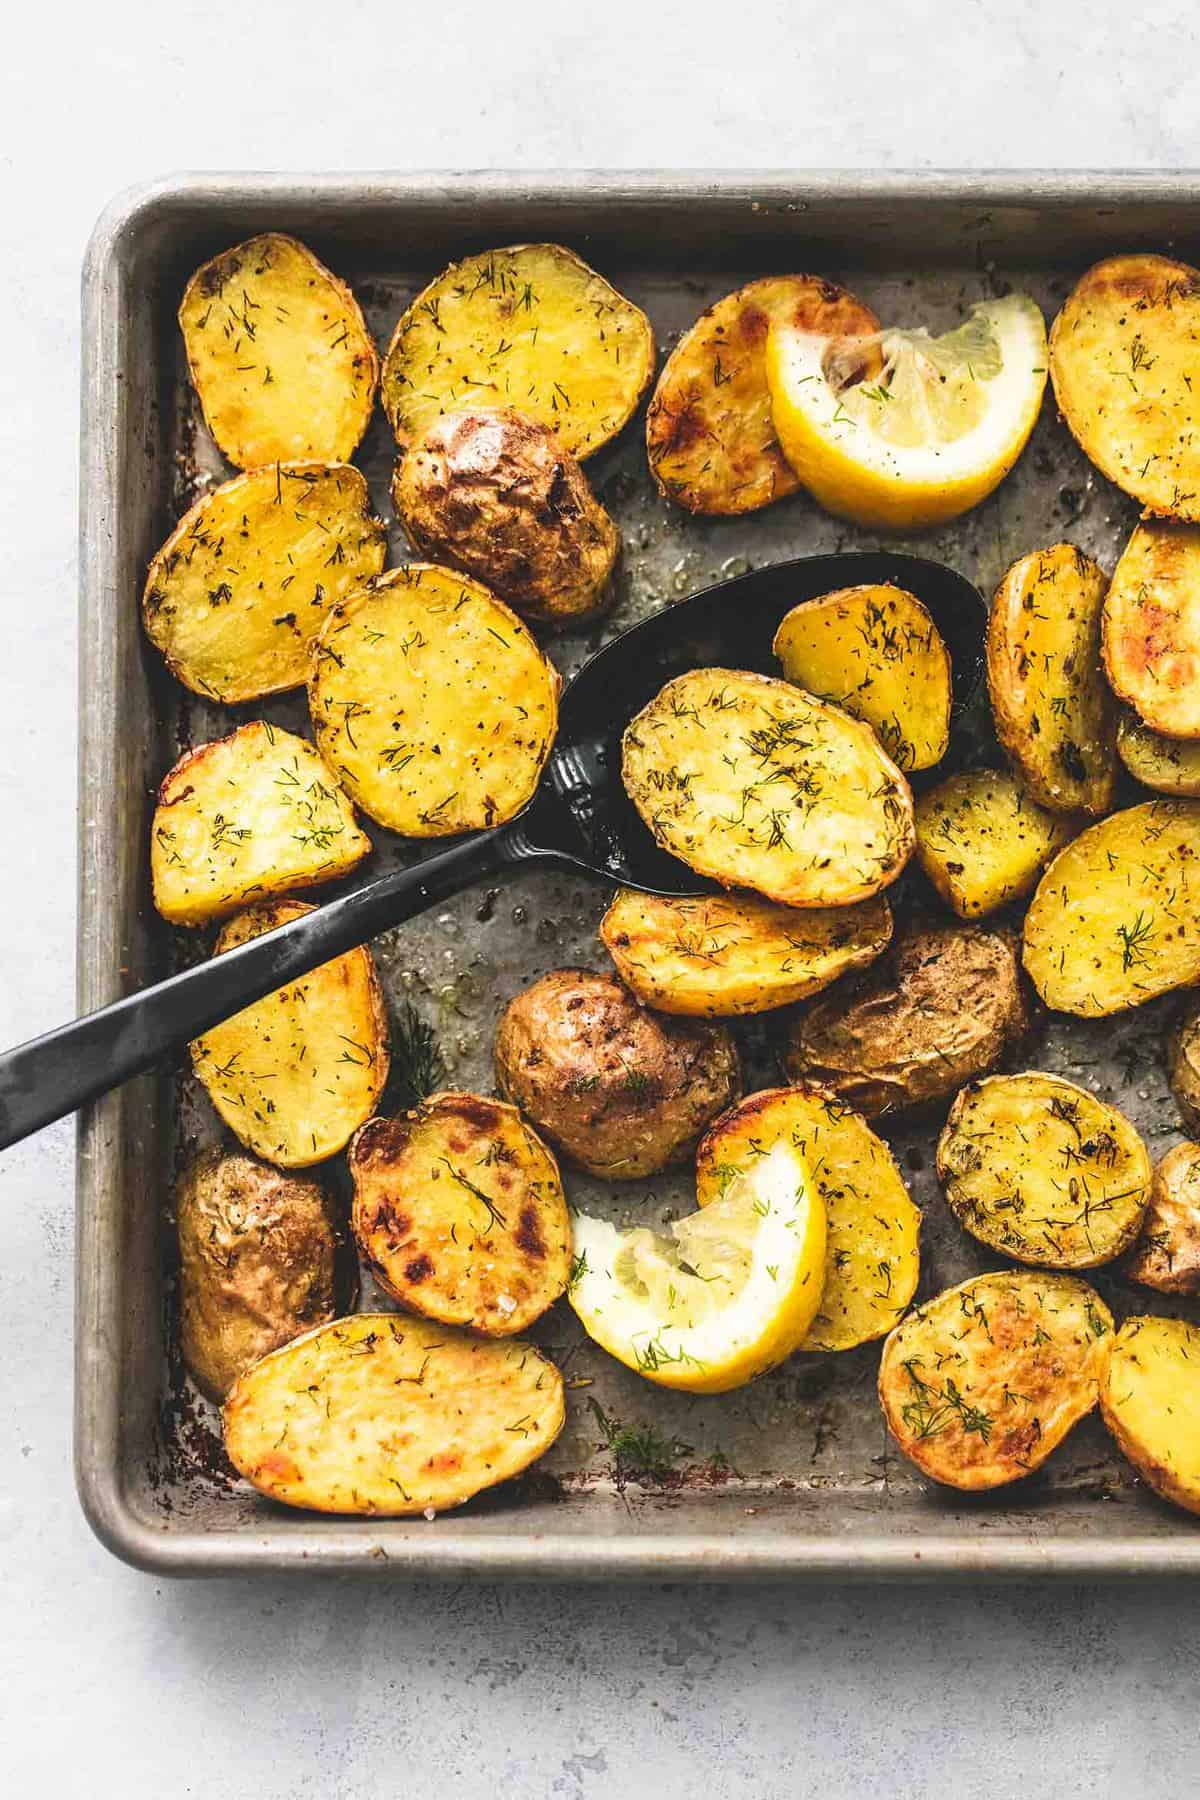 Oven Roasted Dill Potatoes easy side dish recipe | lecremedelacrumb.com